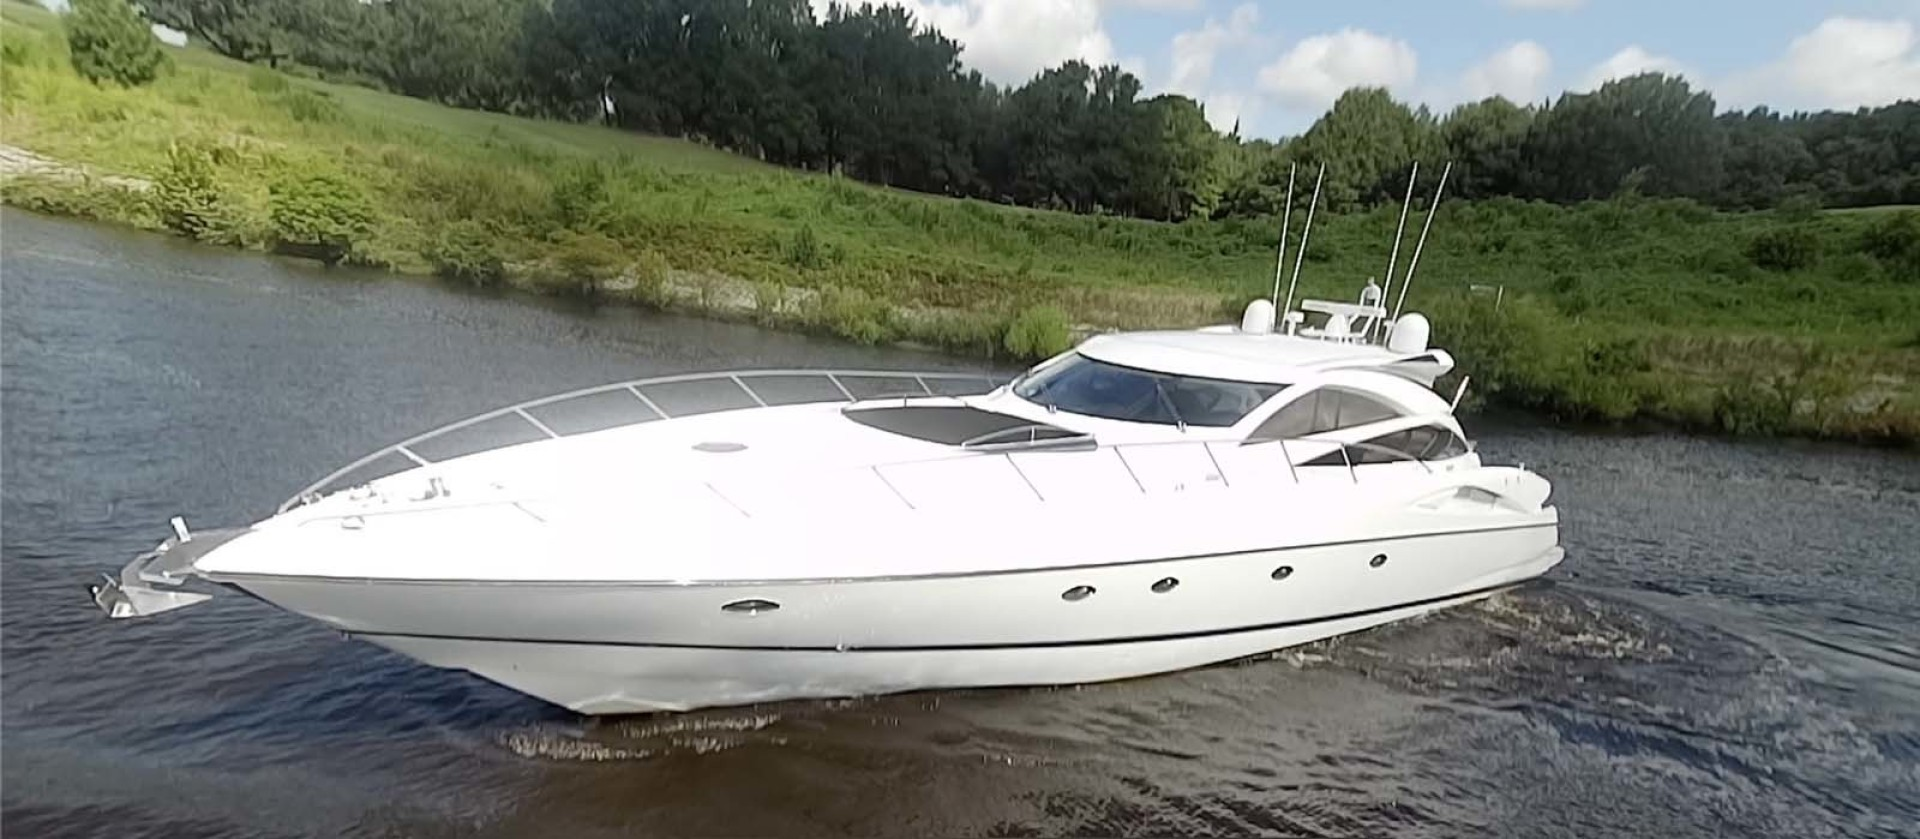 Sunseeker-Predator 2003-Low Profile PALM BEACH-Florida-United States-Port Bow-1576331 | Thumbnail